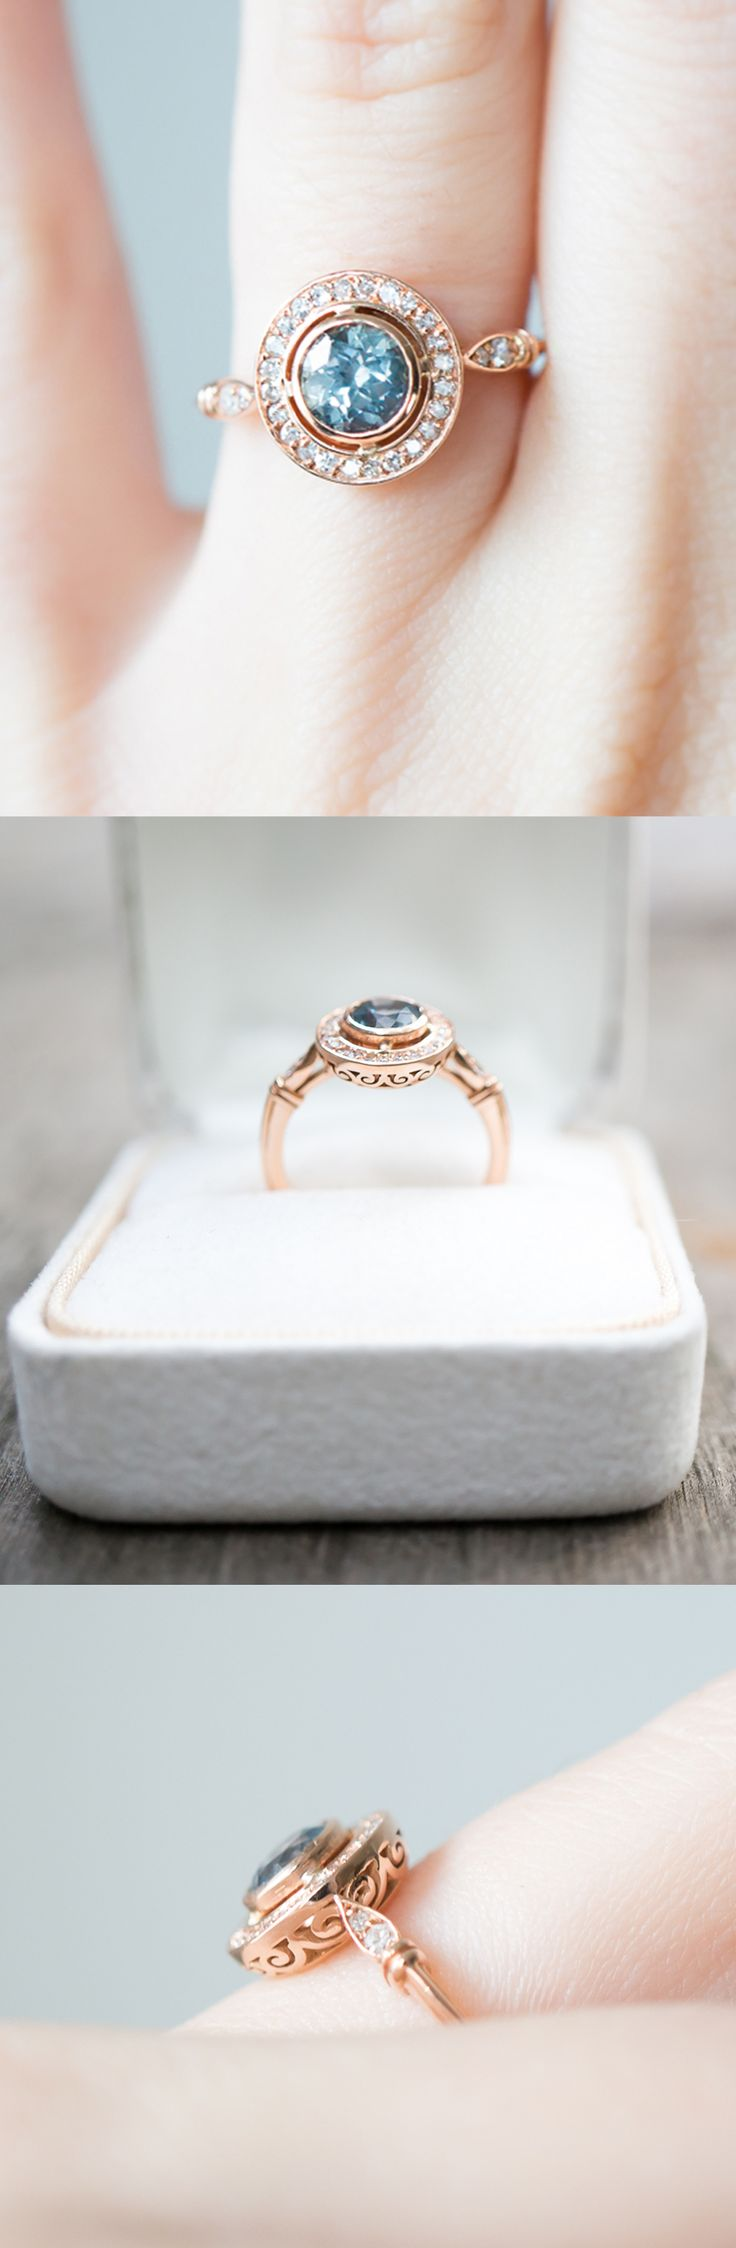 A Detailed Halo Engagement Ring With A Light Blue Sapphire And 28 Reclaimed  Diamonds In 18k